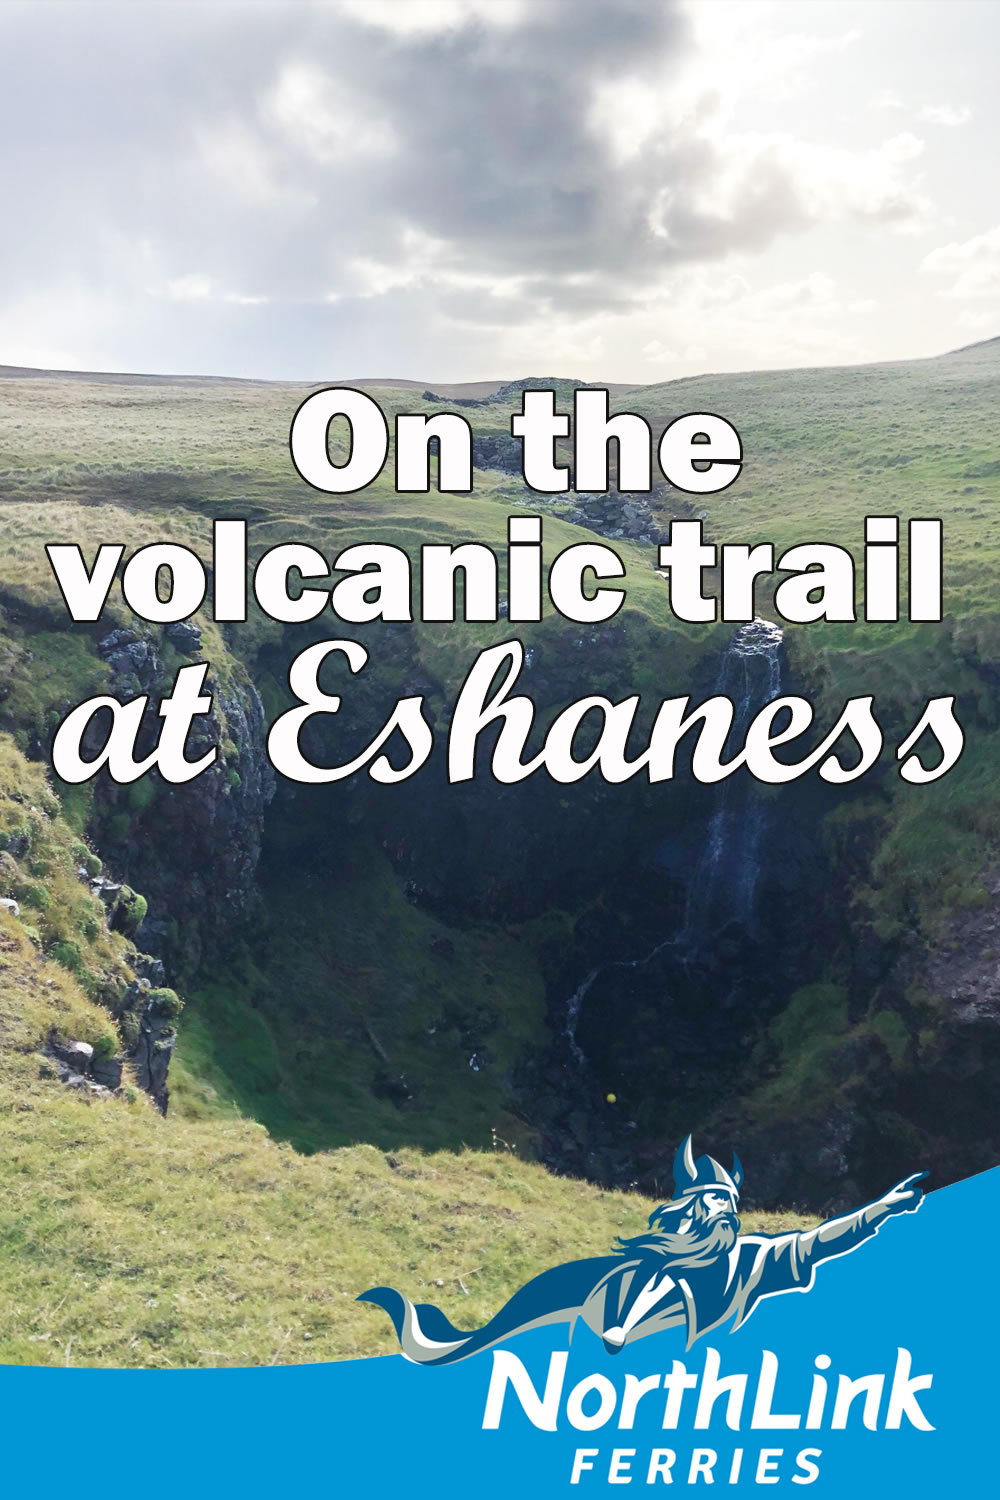 On the volcanic trail at Eshaness